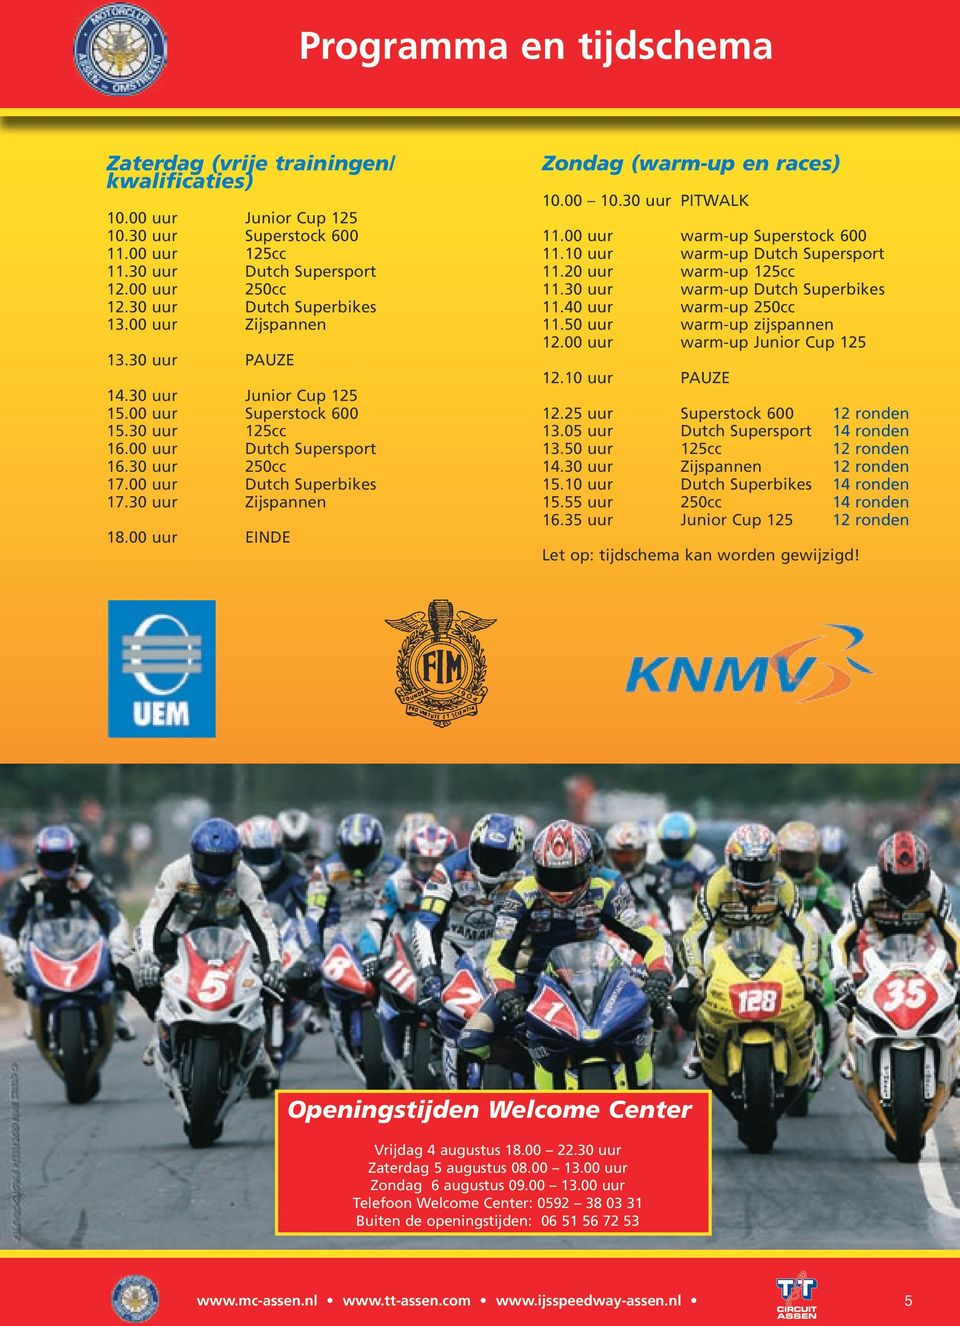 00 uur warm-up Superstock 00.0 uur warm-up Dutch Supersport.0 uur warm-up cc.0 uur warm-up Dutch Superbikes.0 uur warm-up 0cc.0 uur warm-up zijspannen.00 uur warm-up Junior Cup.0 uur PAUZE.